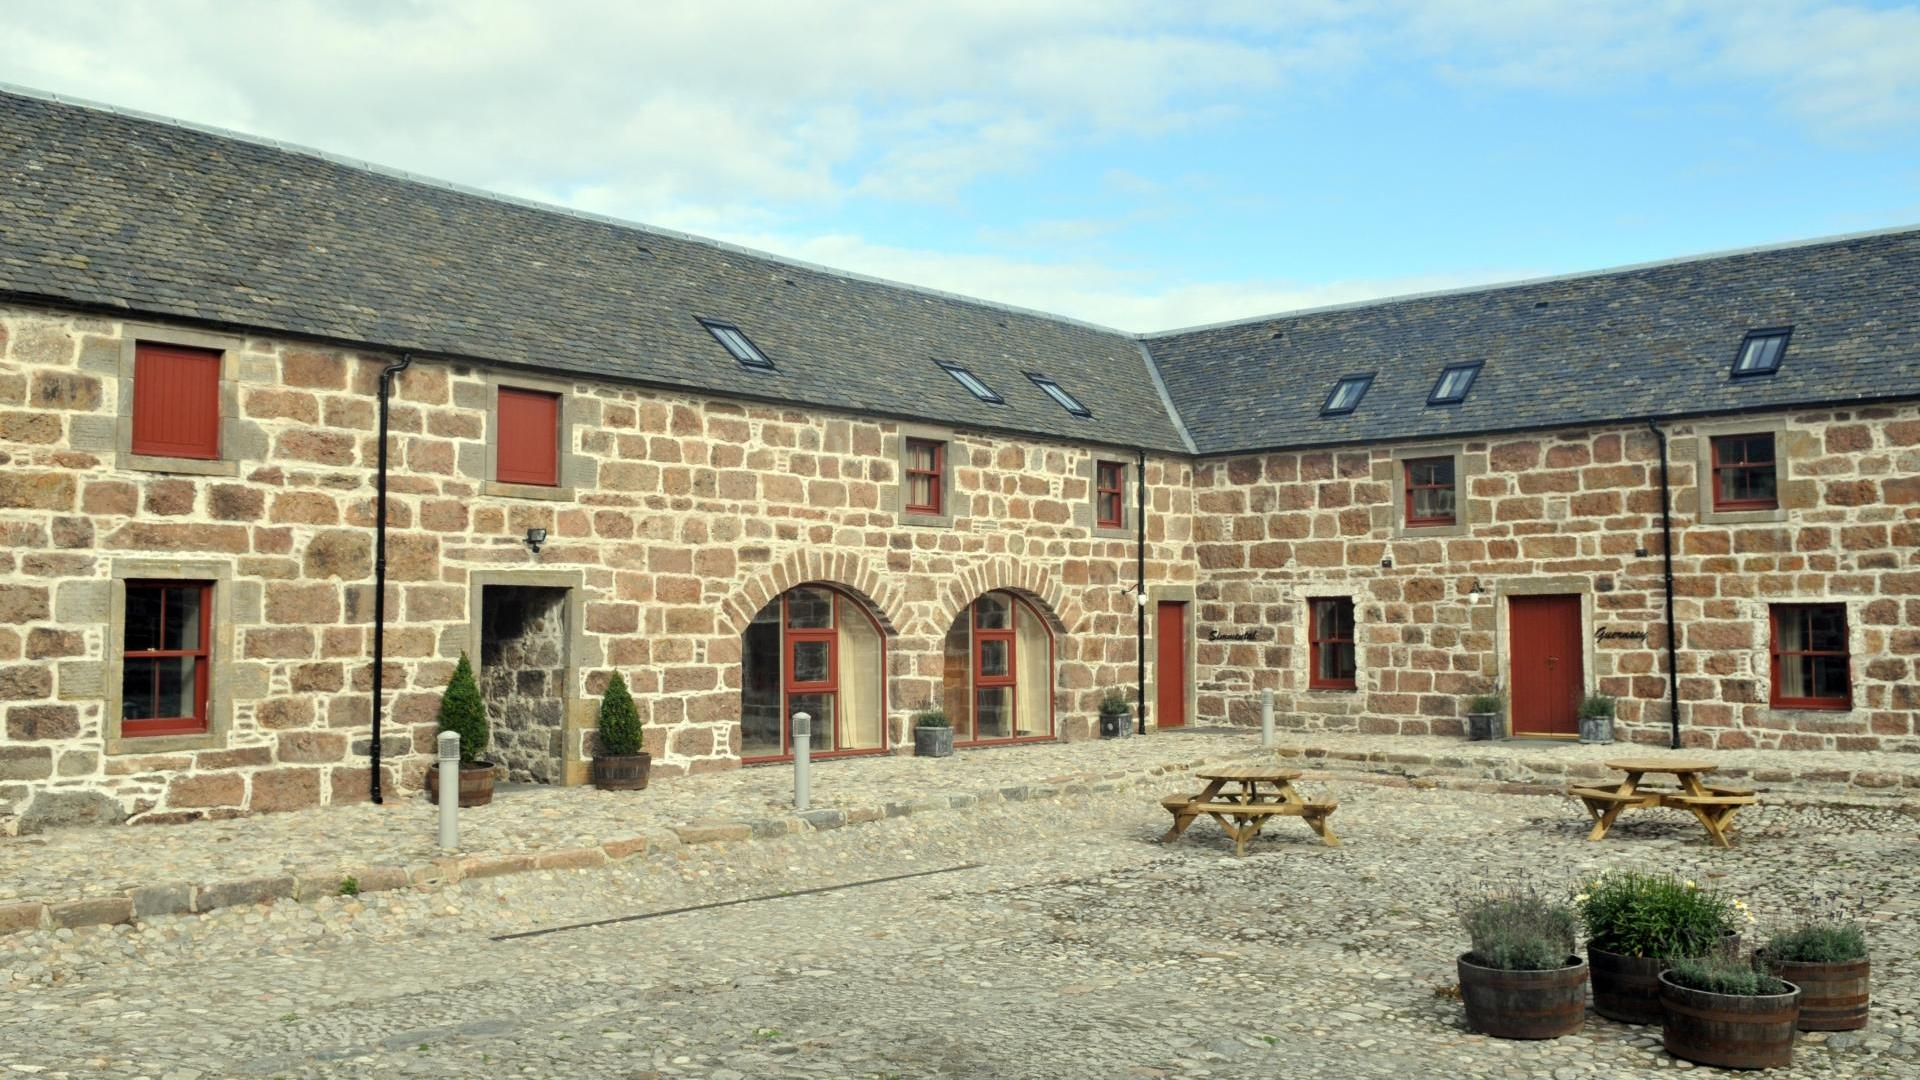 2 Bedroom cottage child friendly in the Highlands near Loch Ness - DRA